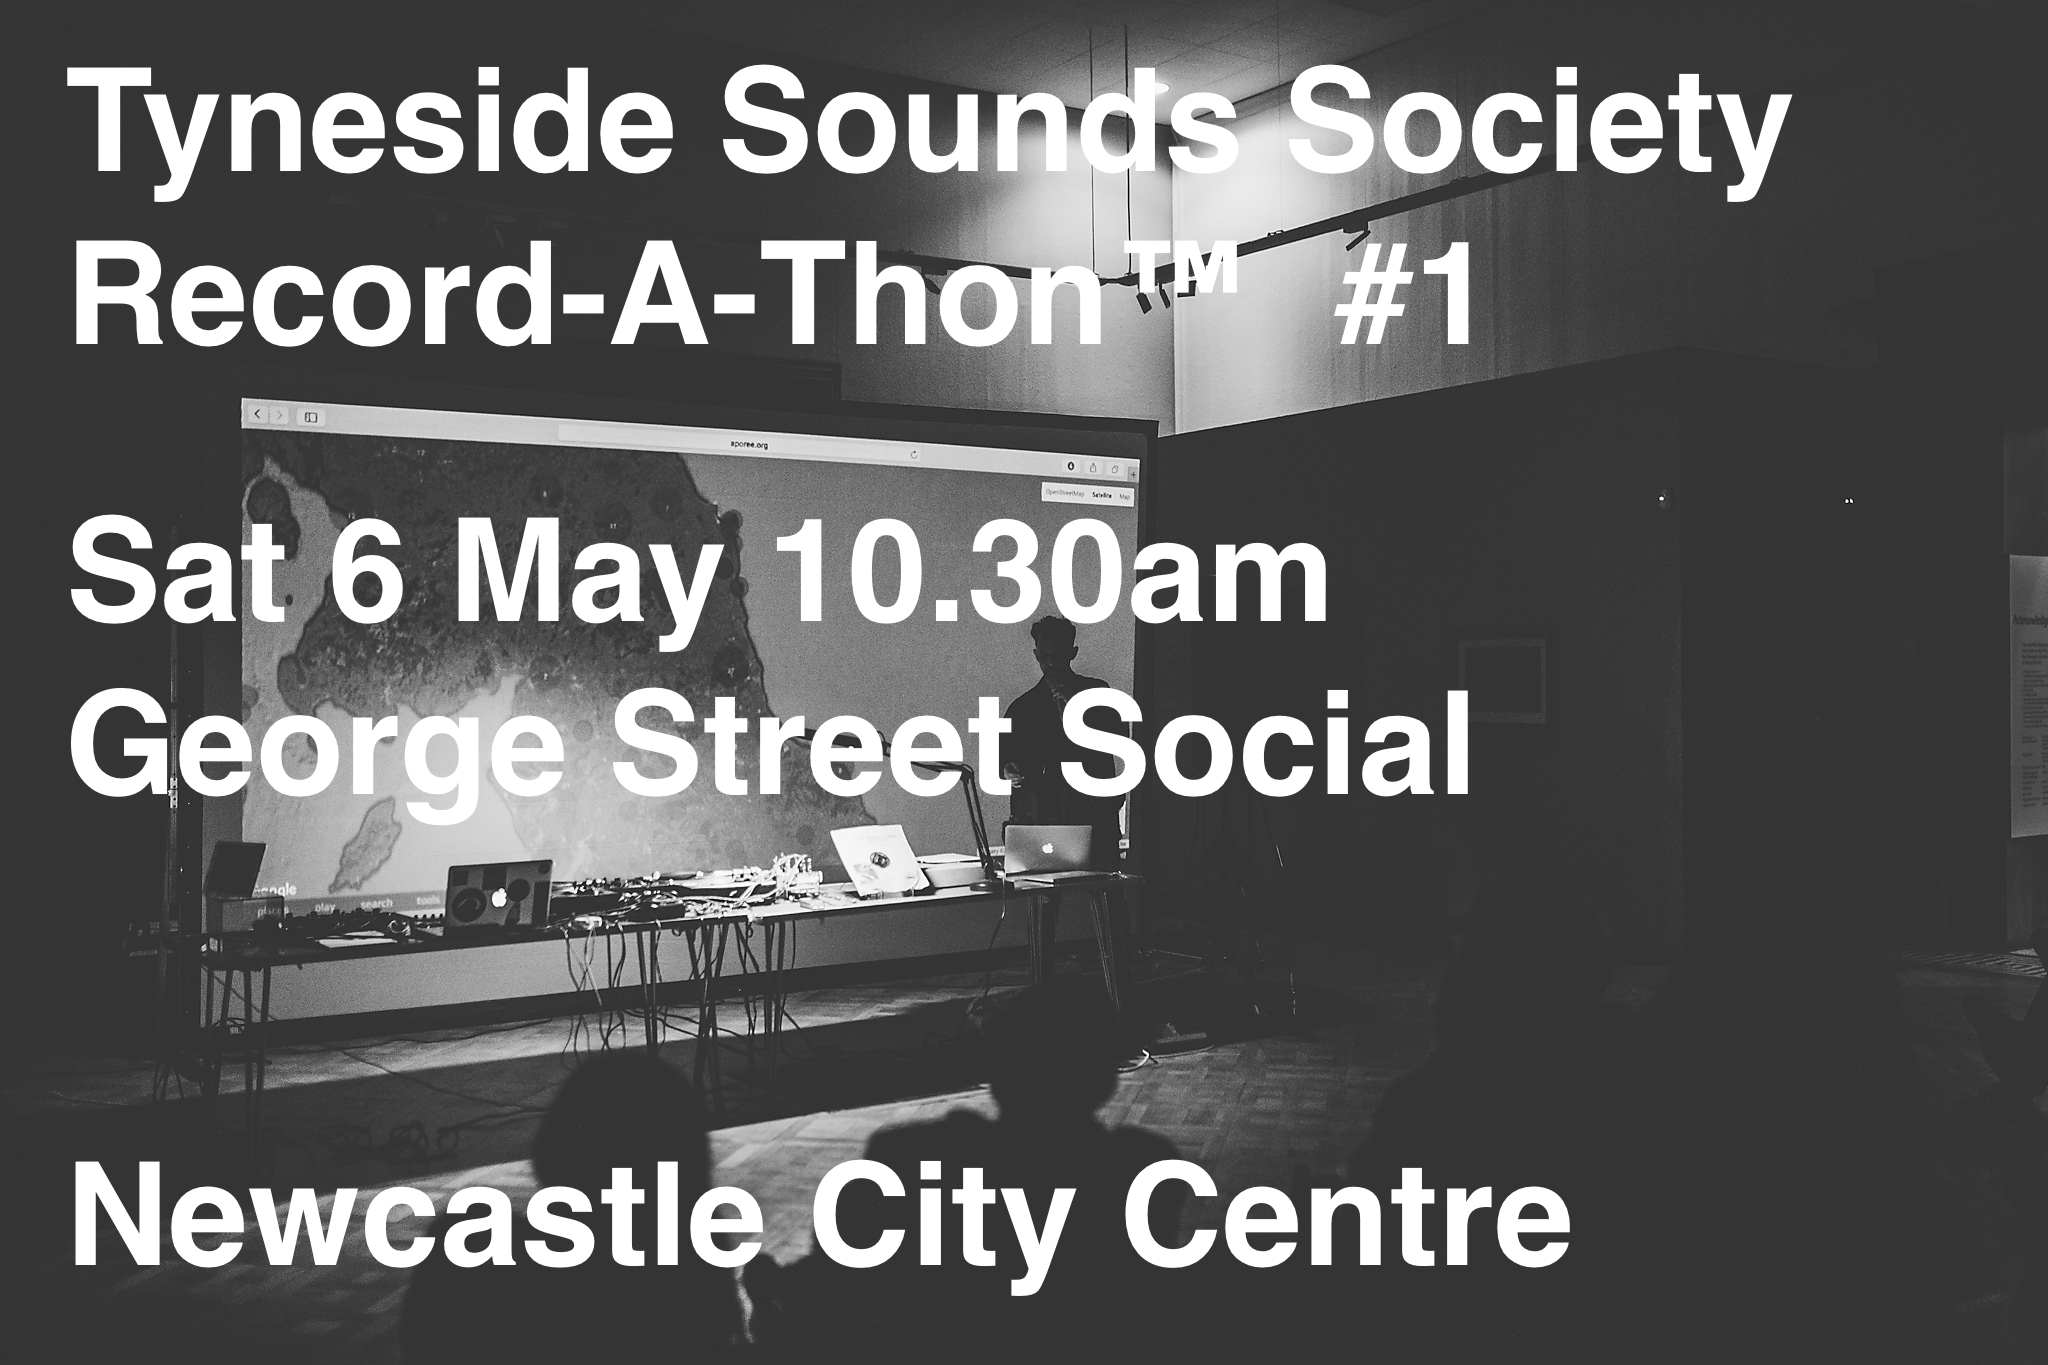 Tyneside Sounds Society RecordAThon 1